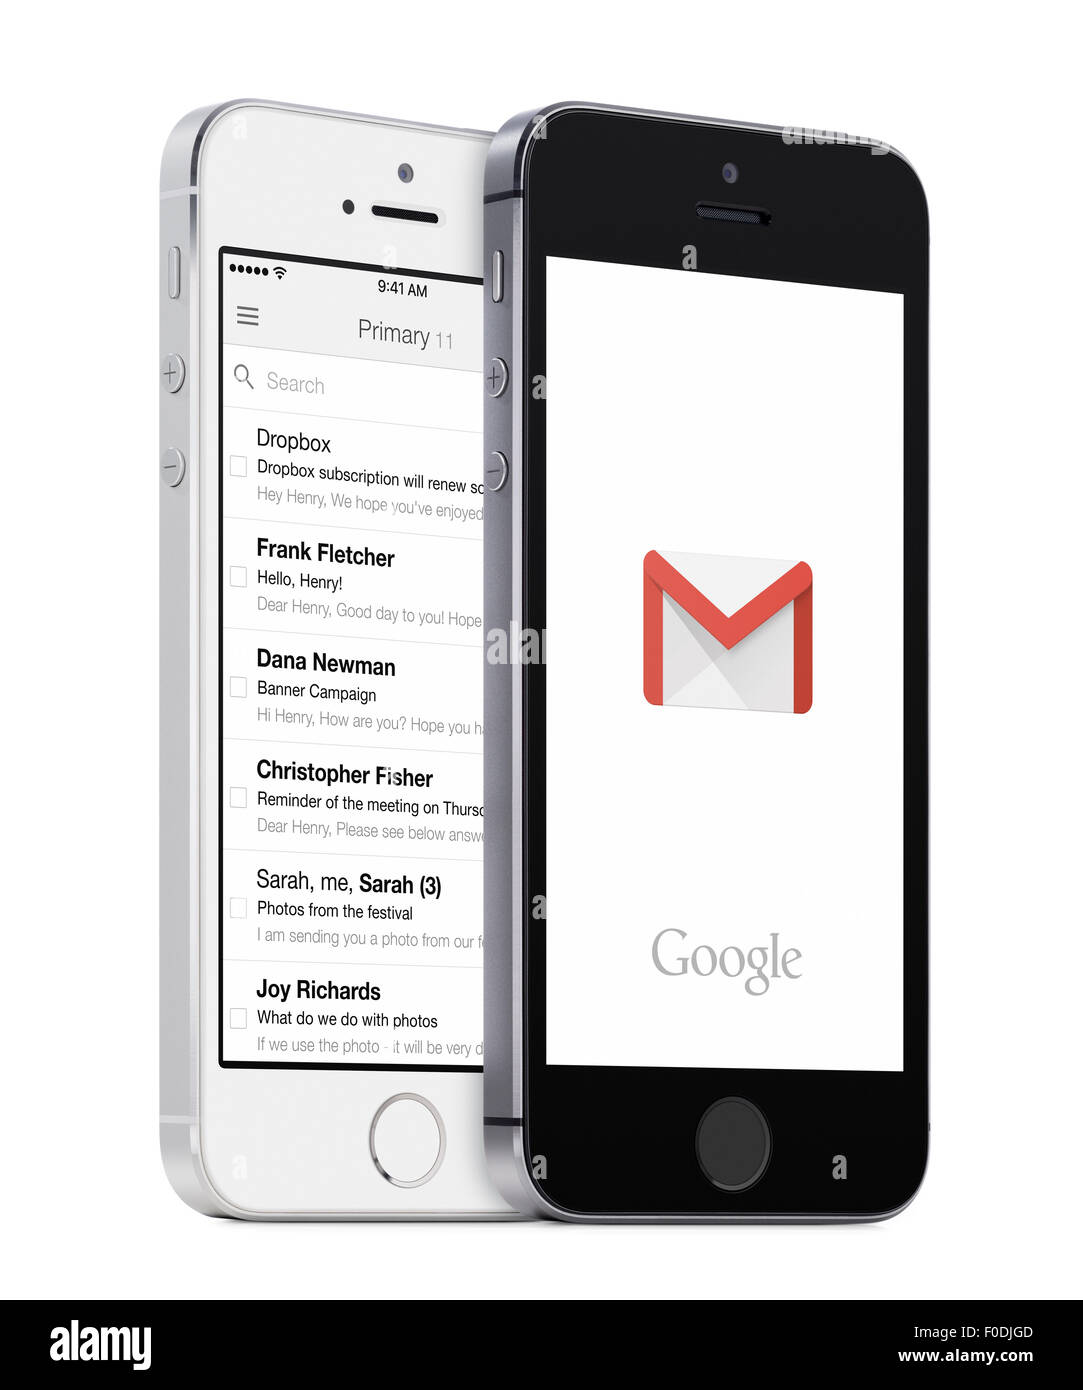 Varna, Bulgaria - May 26, 2015: Google Gmail app logo and Gmail inbox on the white and black Apple iPhones. - Stock Image